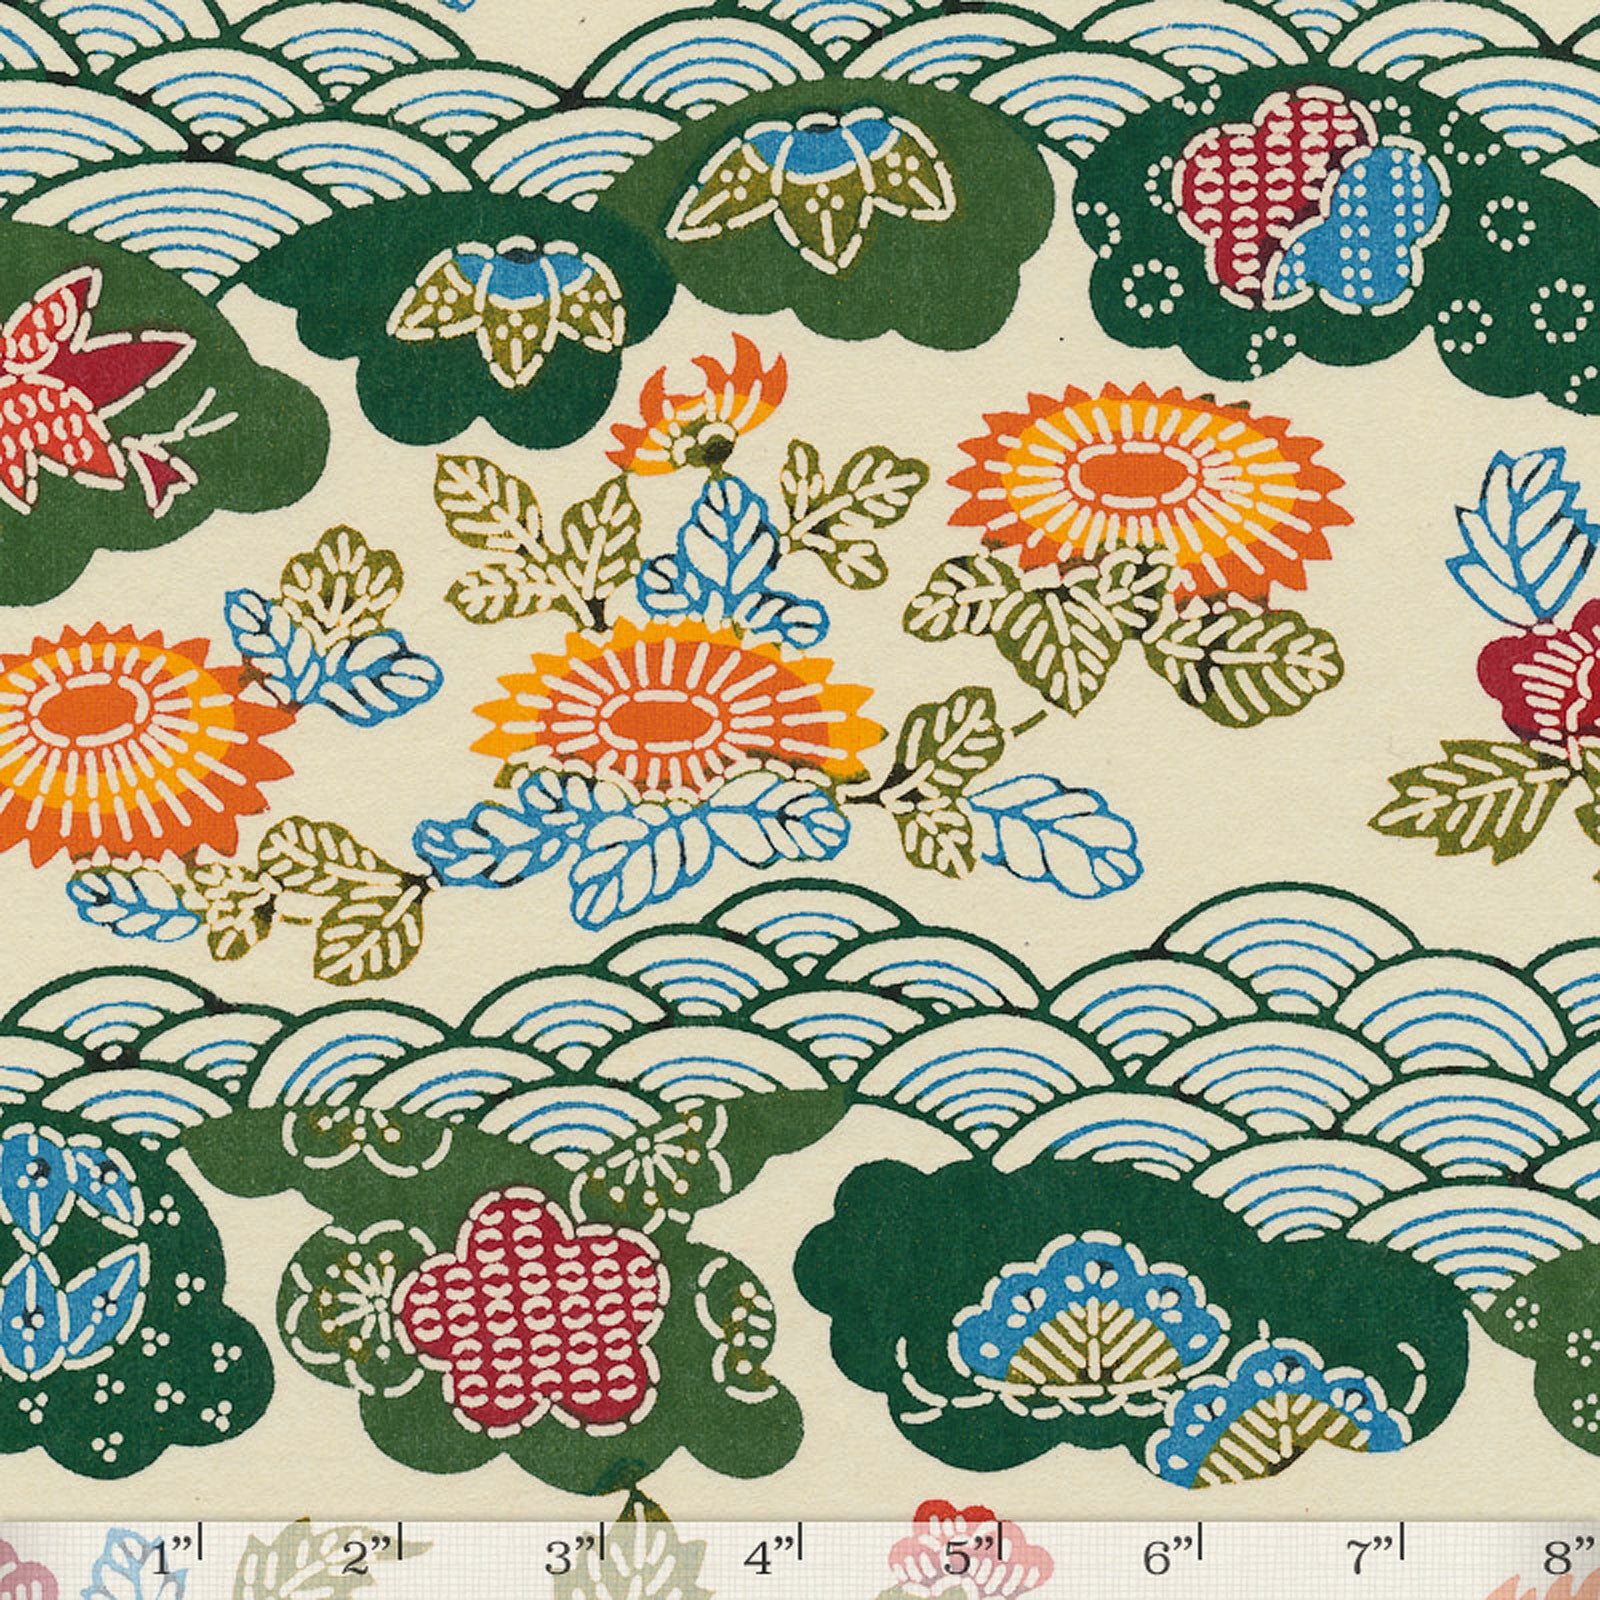 Katazome-shi 134 - Full/Half Sheet